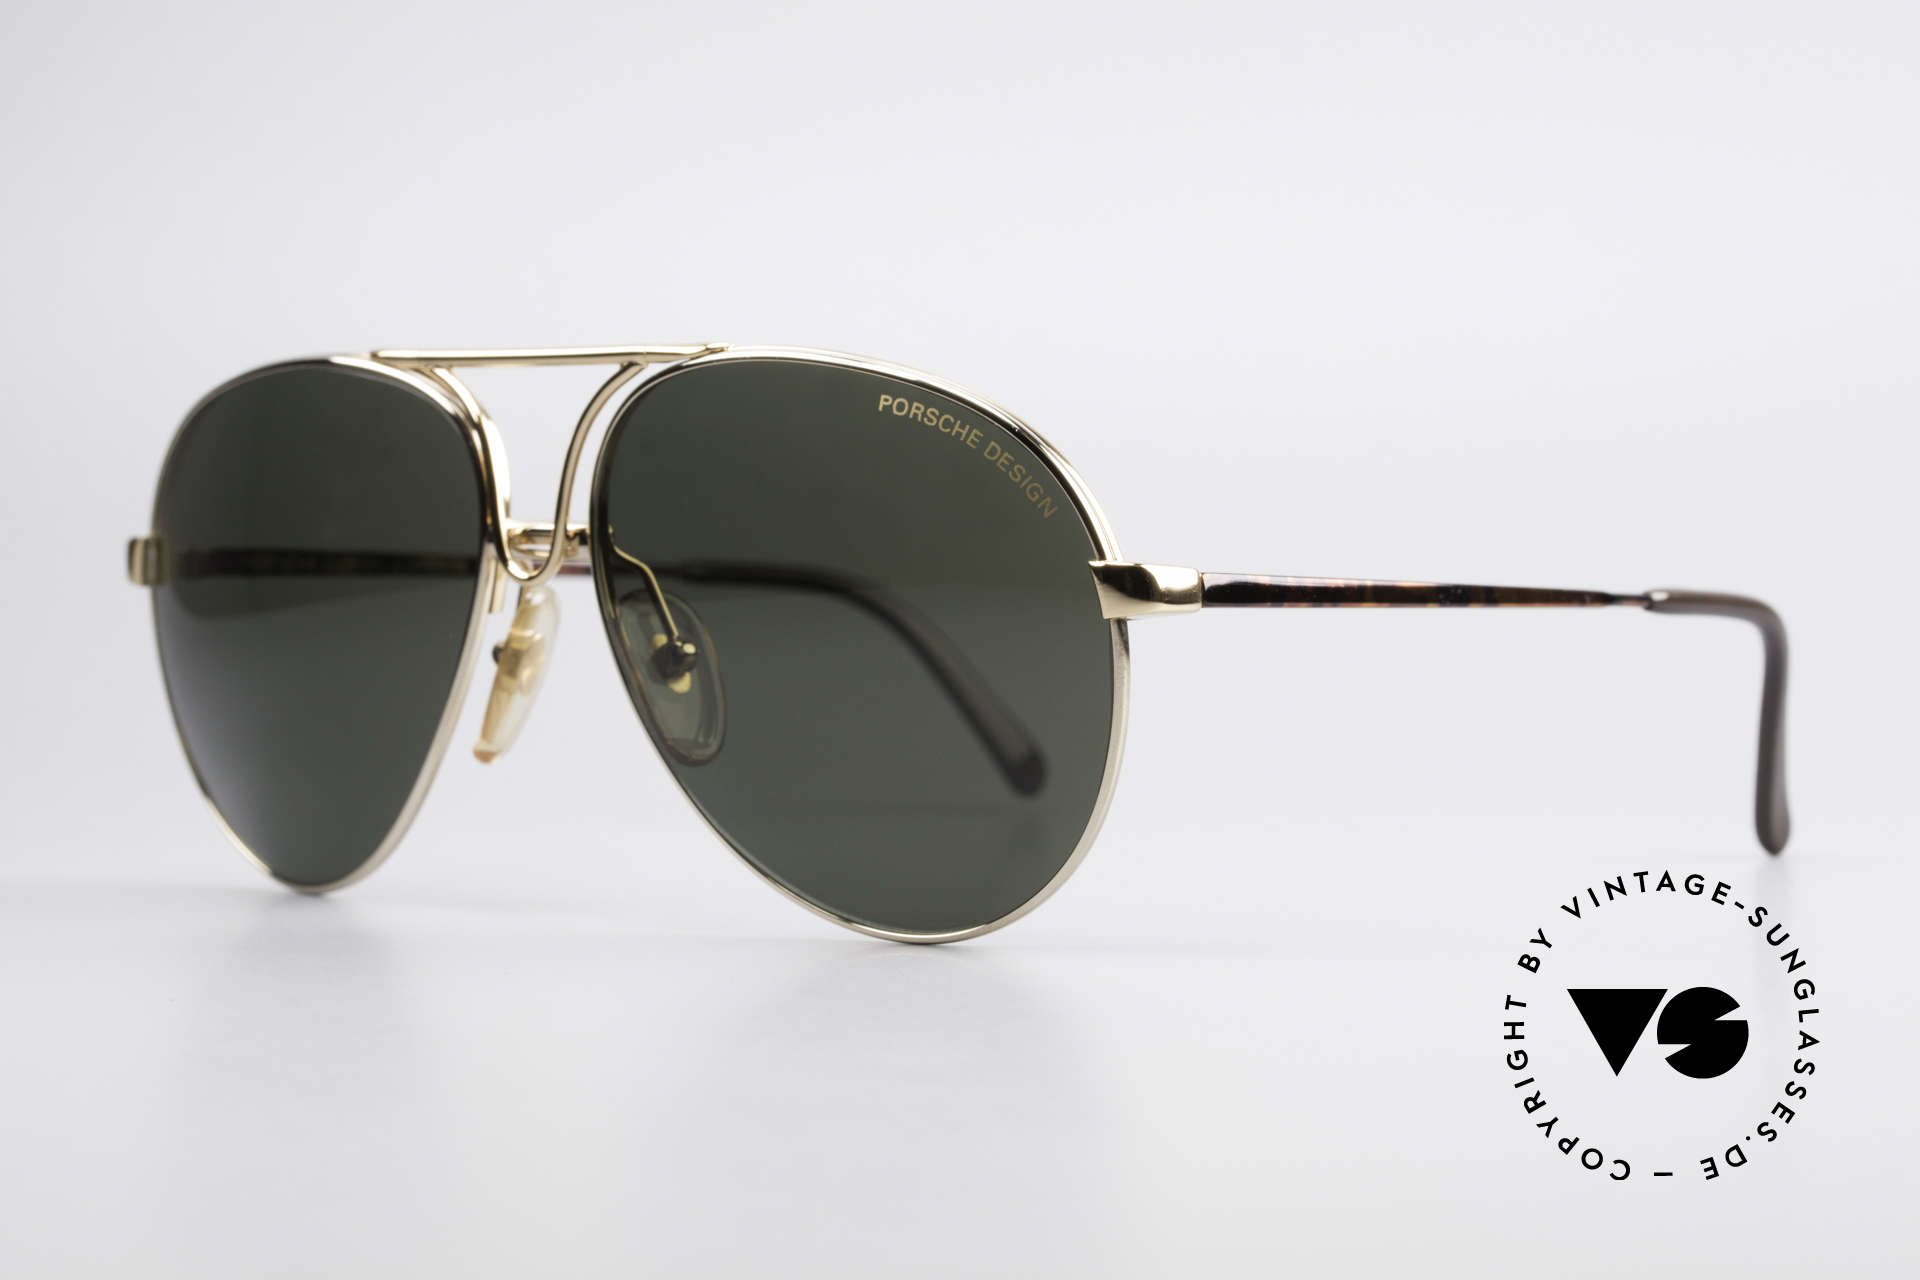 Porsche 5657 L Sunglasses With Two Fronts, 1x tortoise with demos & 1x gold with sun lenses, Made for Men